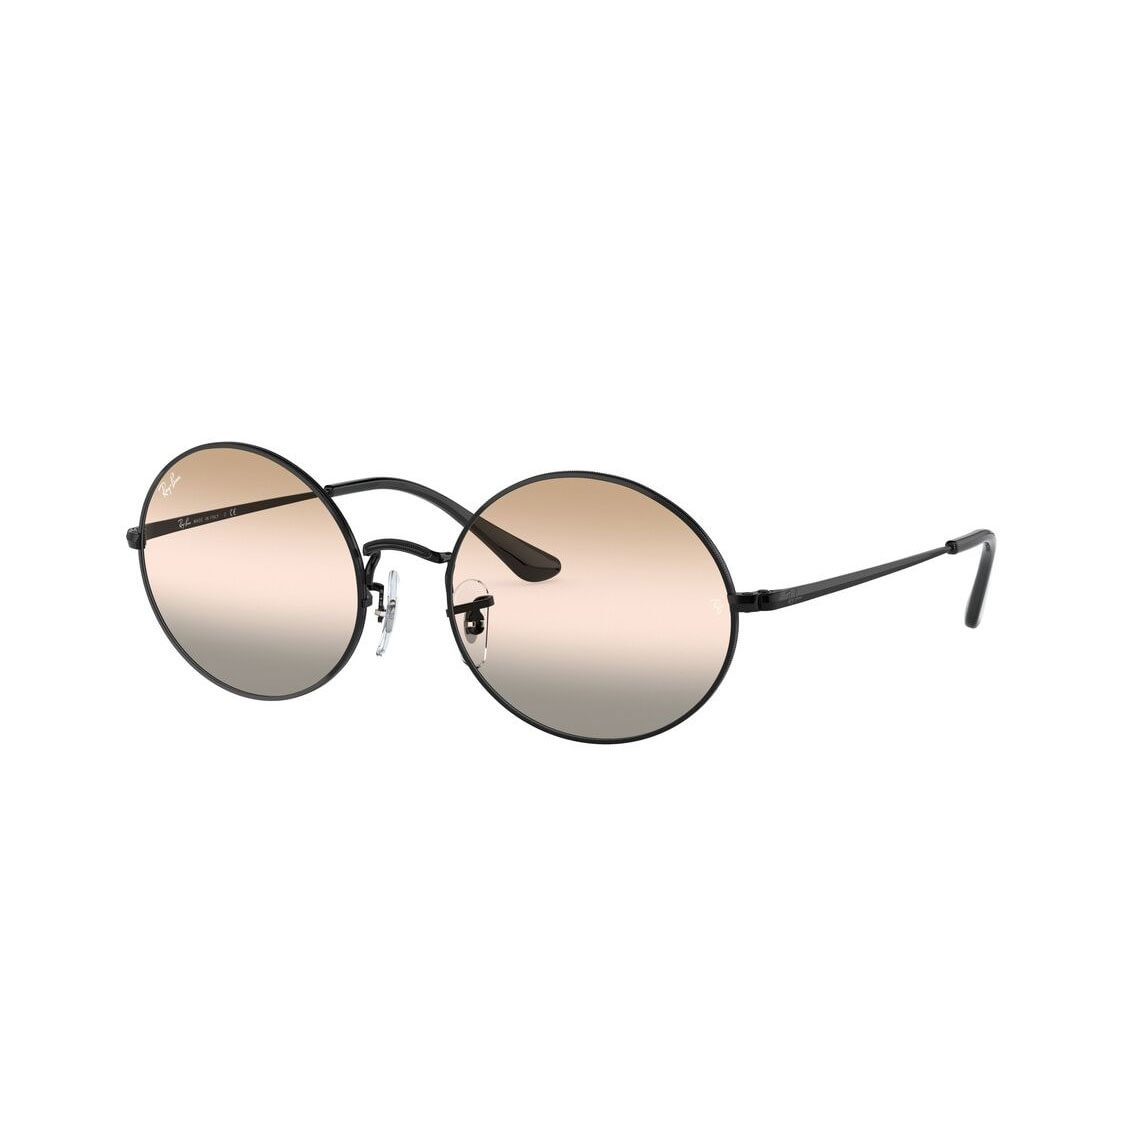 Ray-Ban Oval RB1970 002/GG 5419